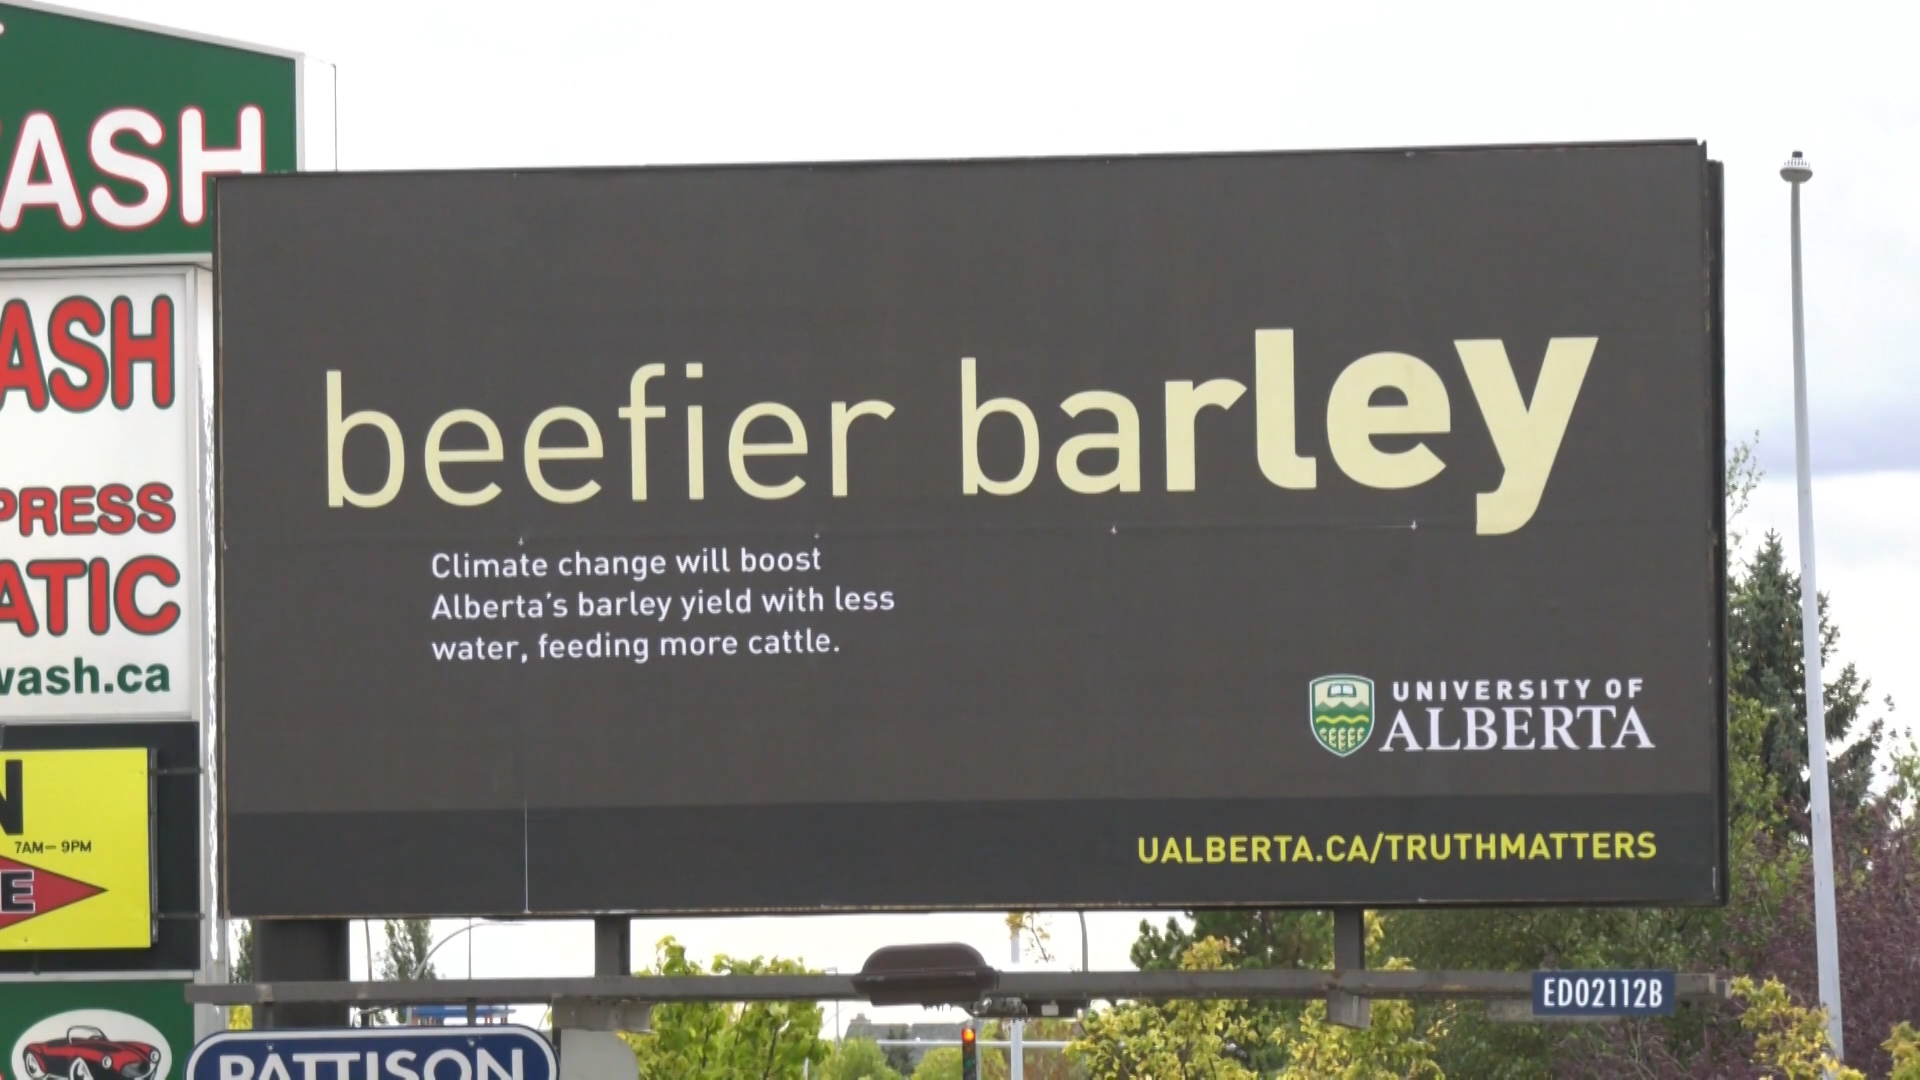 Billboard touting the benefits of climate change appears in